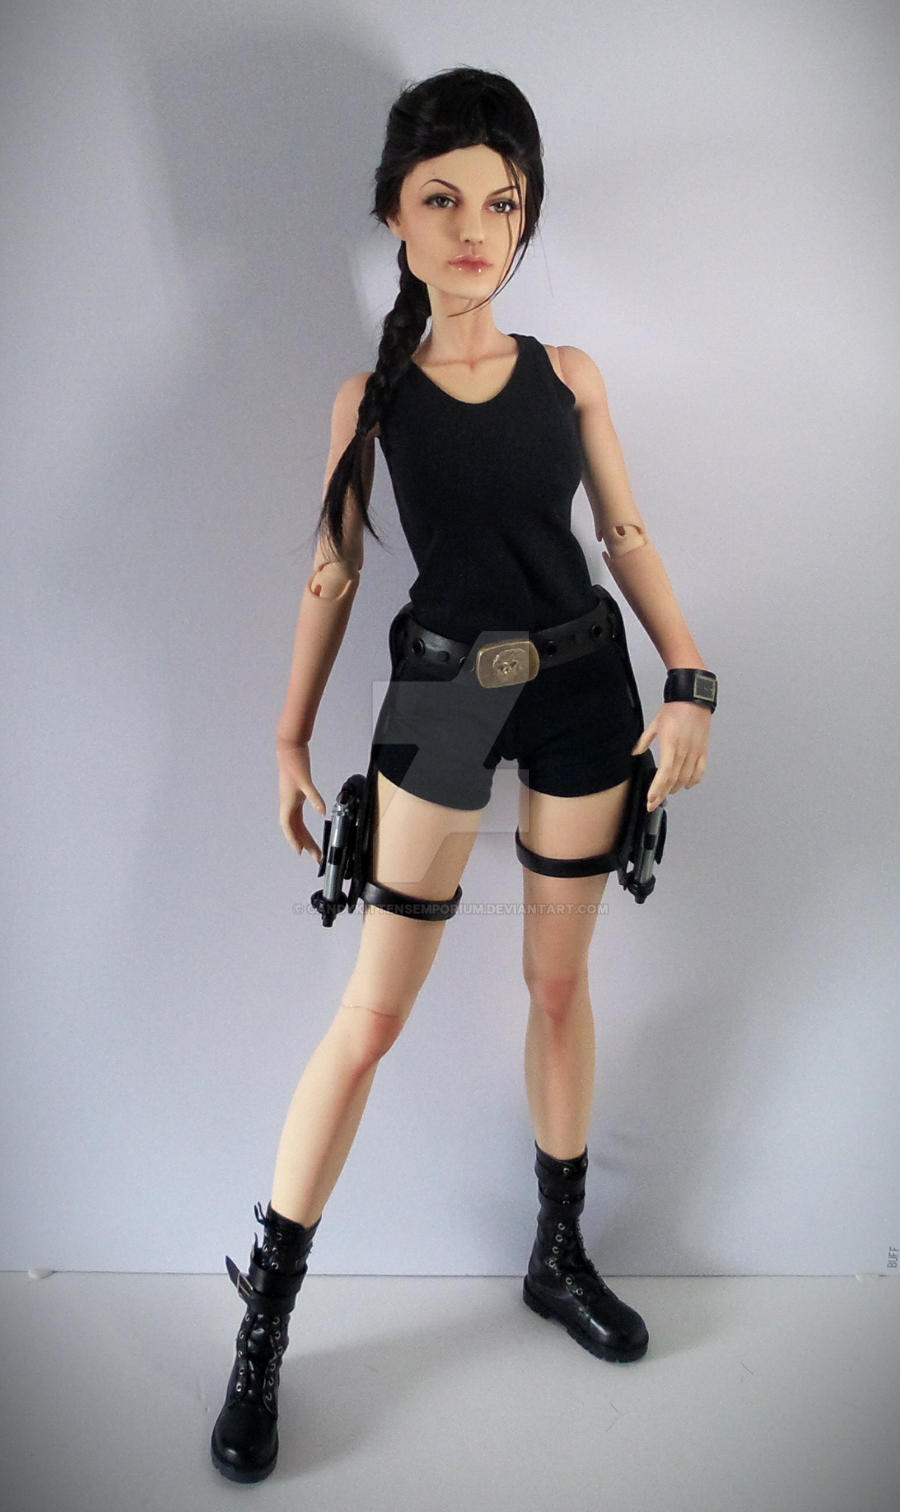 Lara Croft/Tomb Raider Movie Doll by CandyKittensEmporium